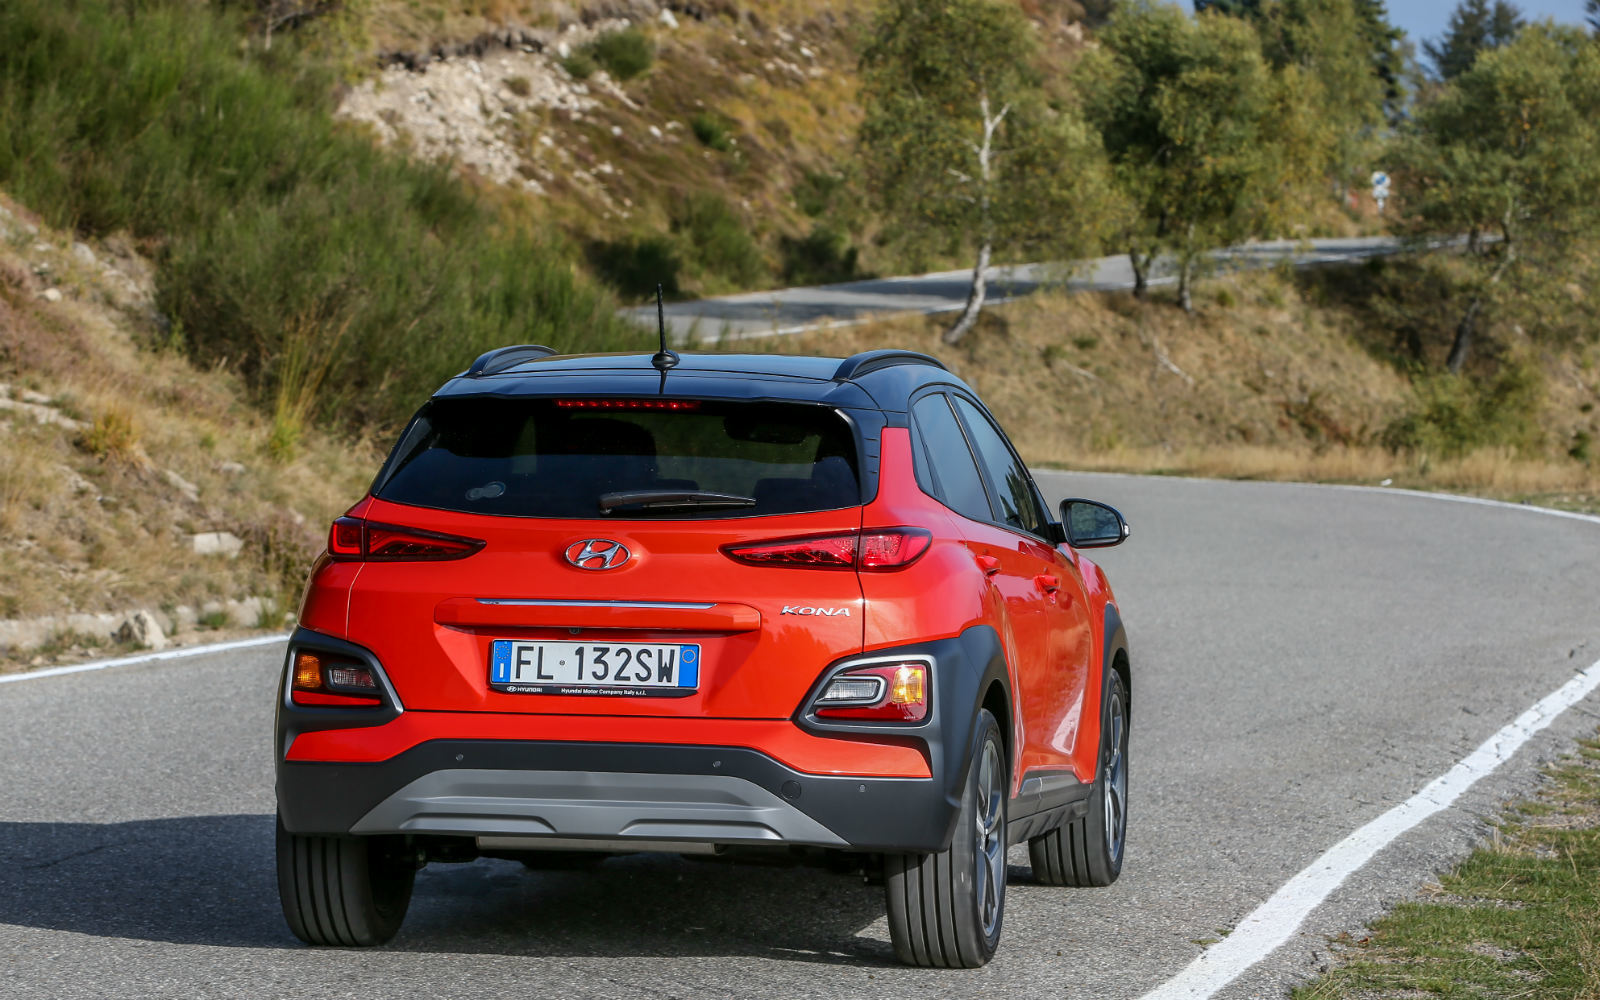 hyundai kona riceve 5 stelle da euro ncap per aver superato brillantemente i suoi test autospecial. Black Bedroom Furniture Sets. Home Design Ideas